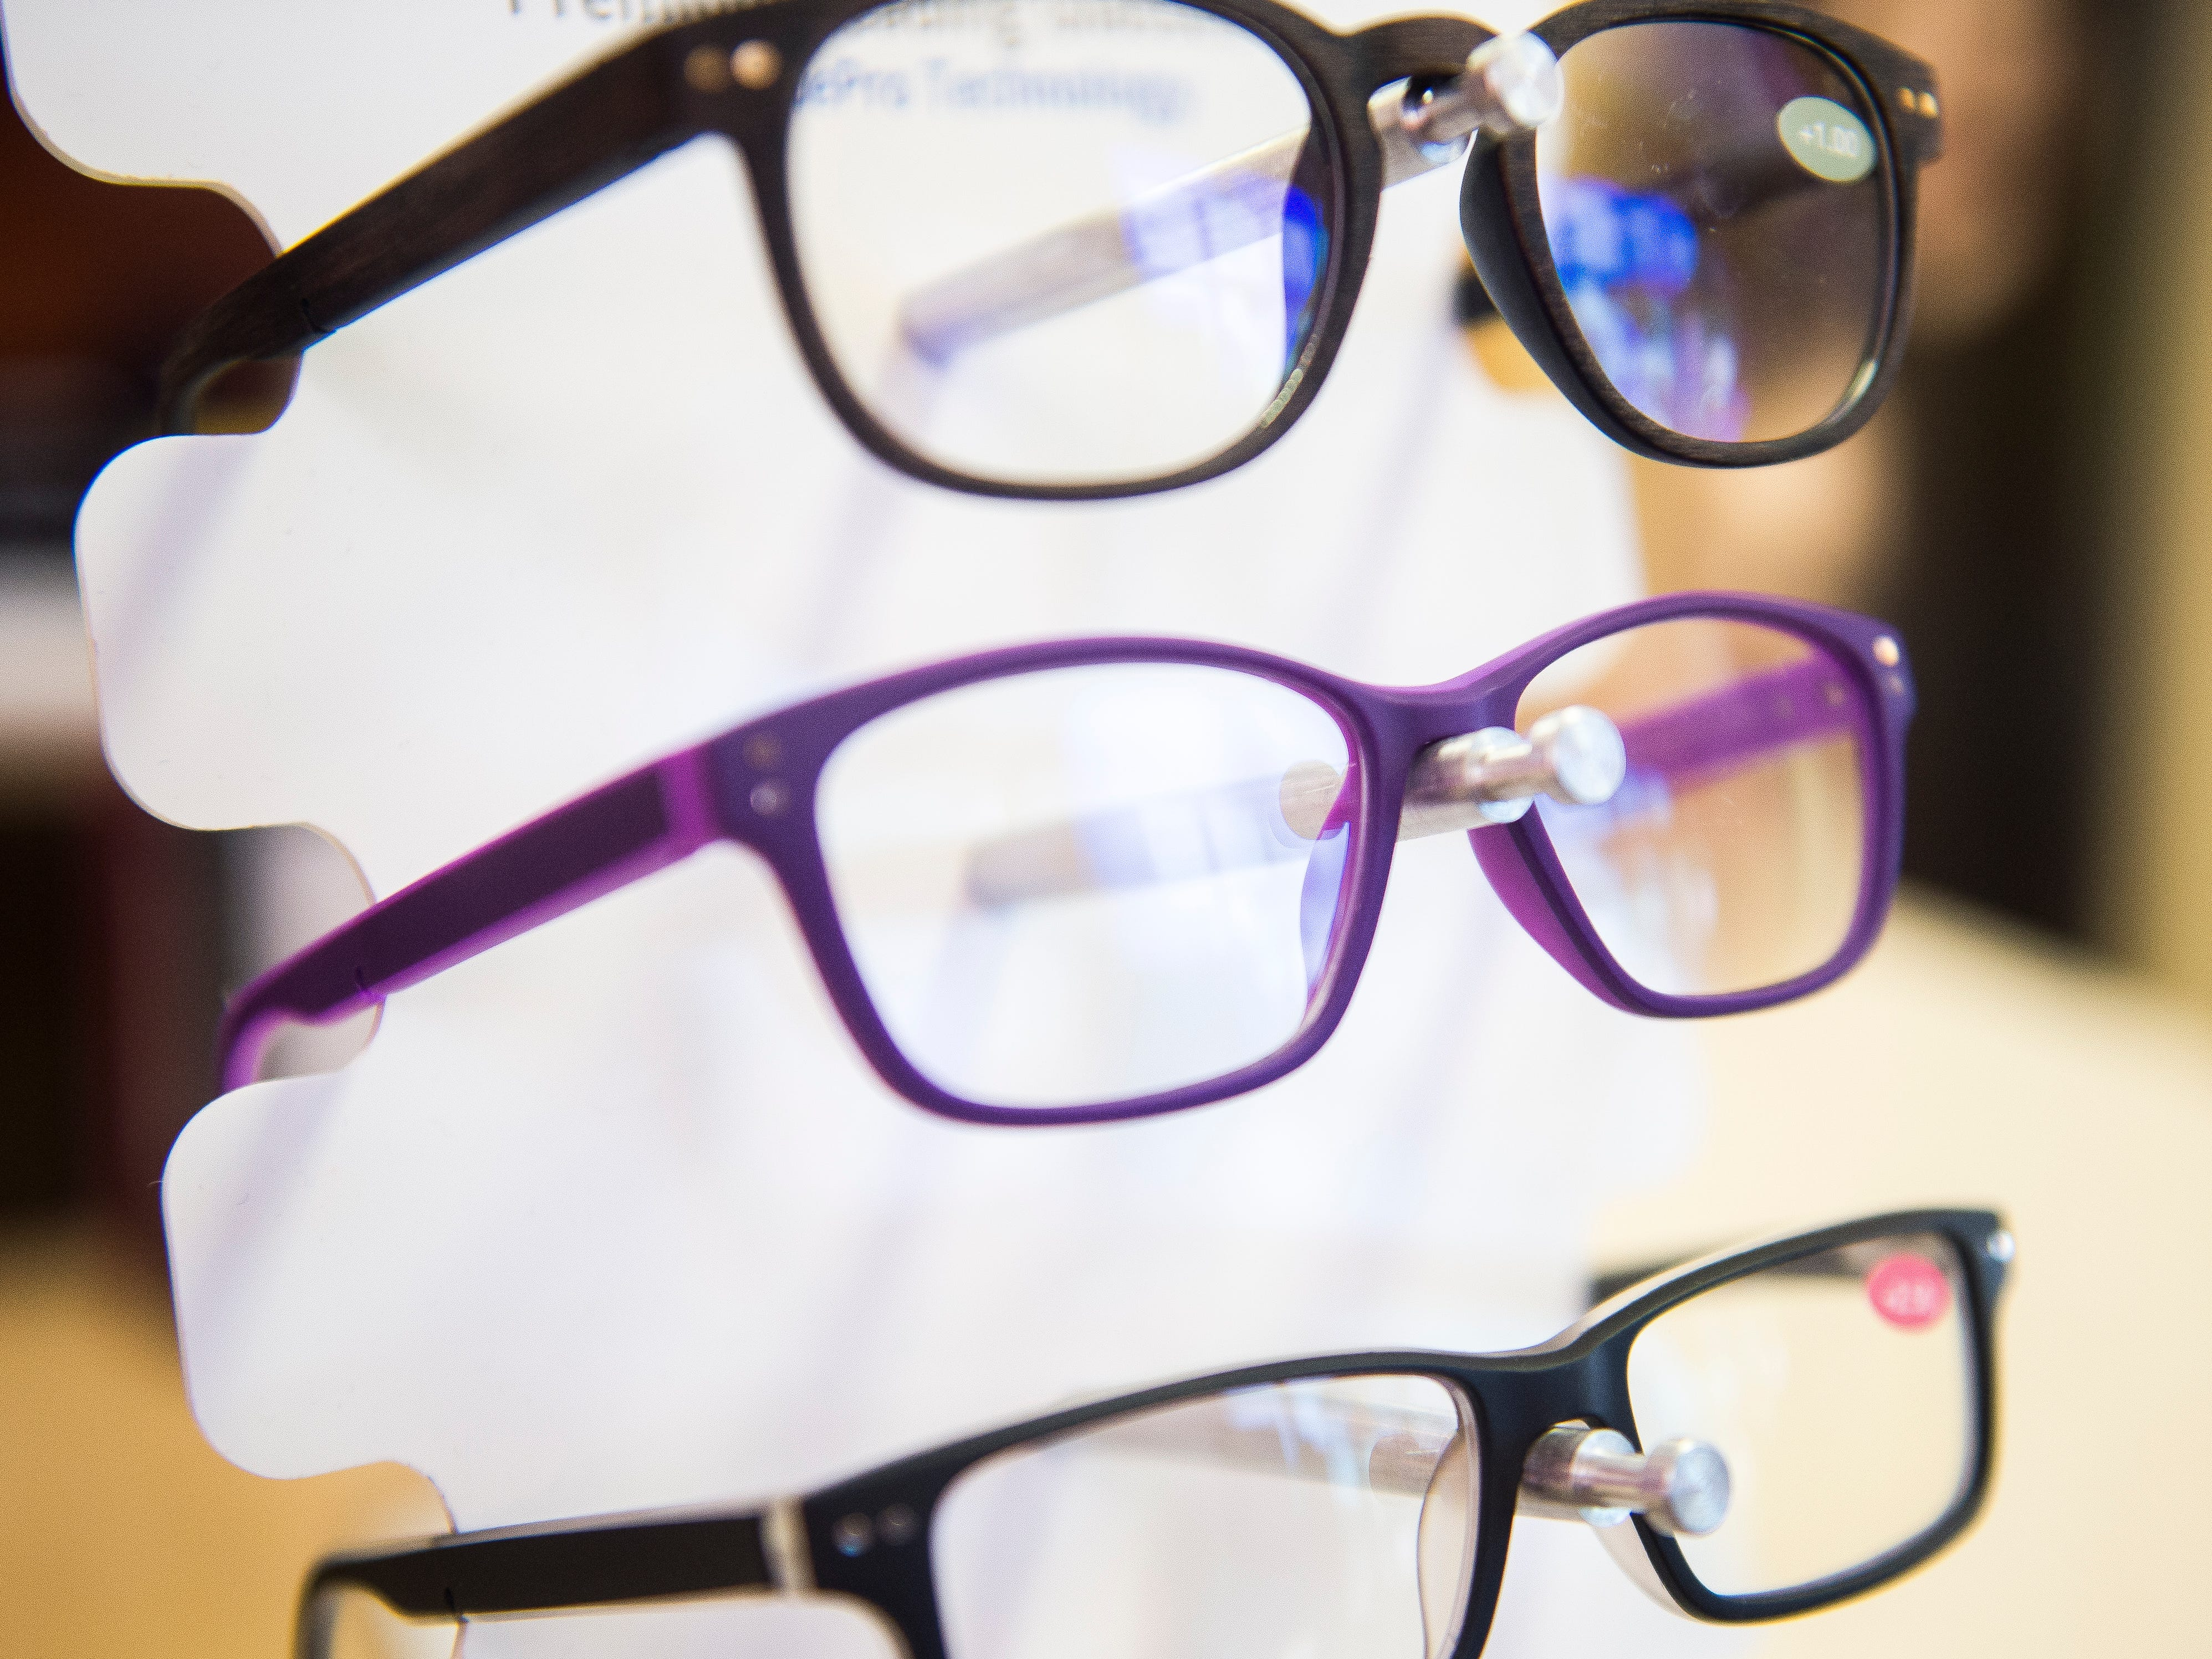 Do you need special glasses for screen use? Or are they a waste of money?